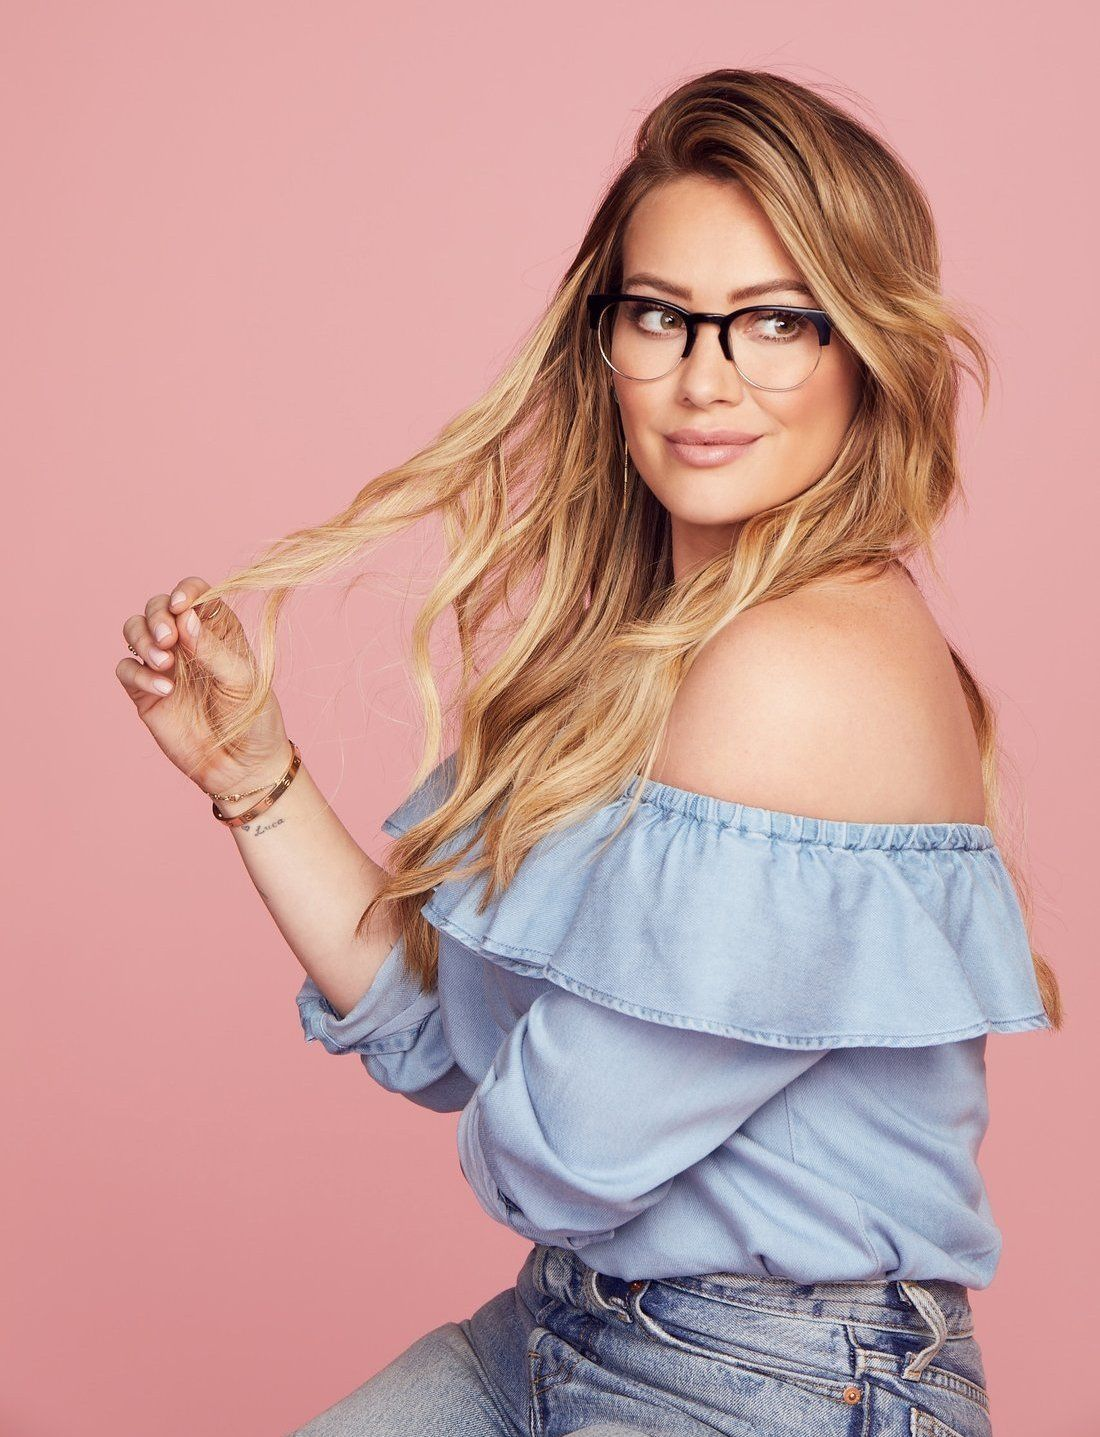 Hilary Duff Designed Her Own Glasses Collection And Named Them All ...